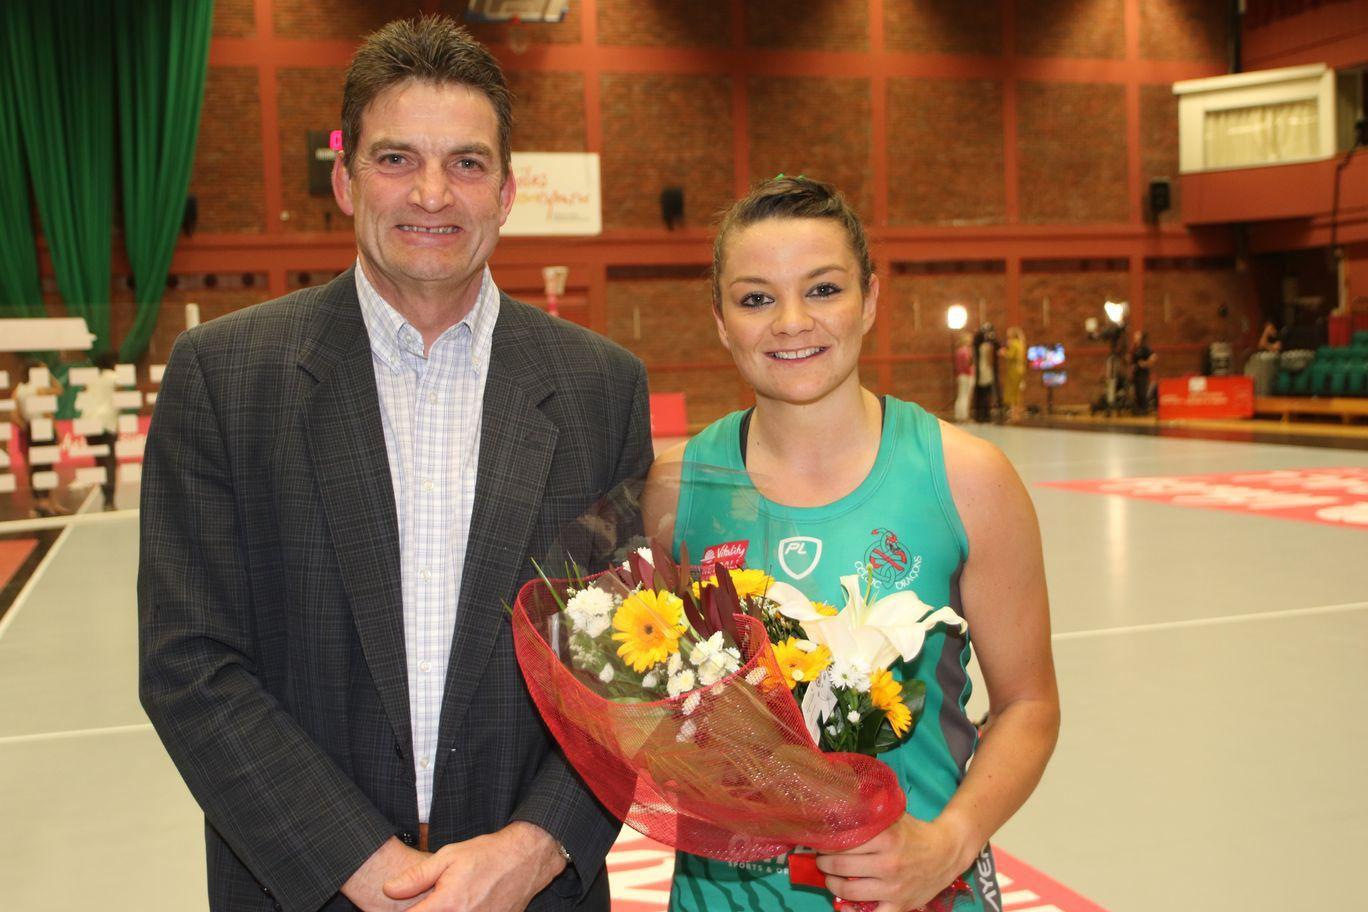 WD Nia Jones awarded Player of the Match by Dr Tudor Williams, Director of Sport at the University of South Wales. USW are 2018 Celtic Dragons partners providing industry leading S&C, facilities, analysis and sports psychology support to the squad.